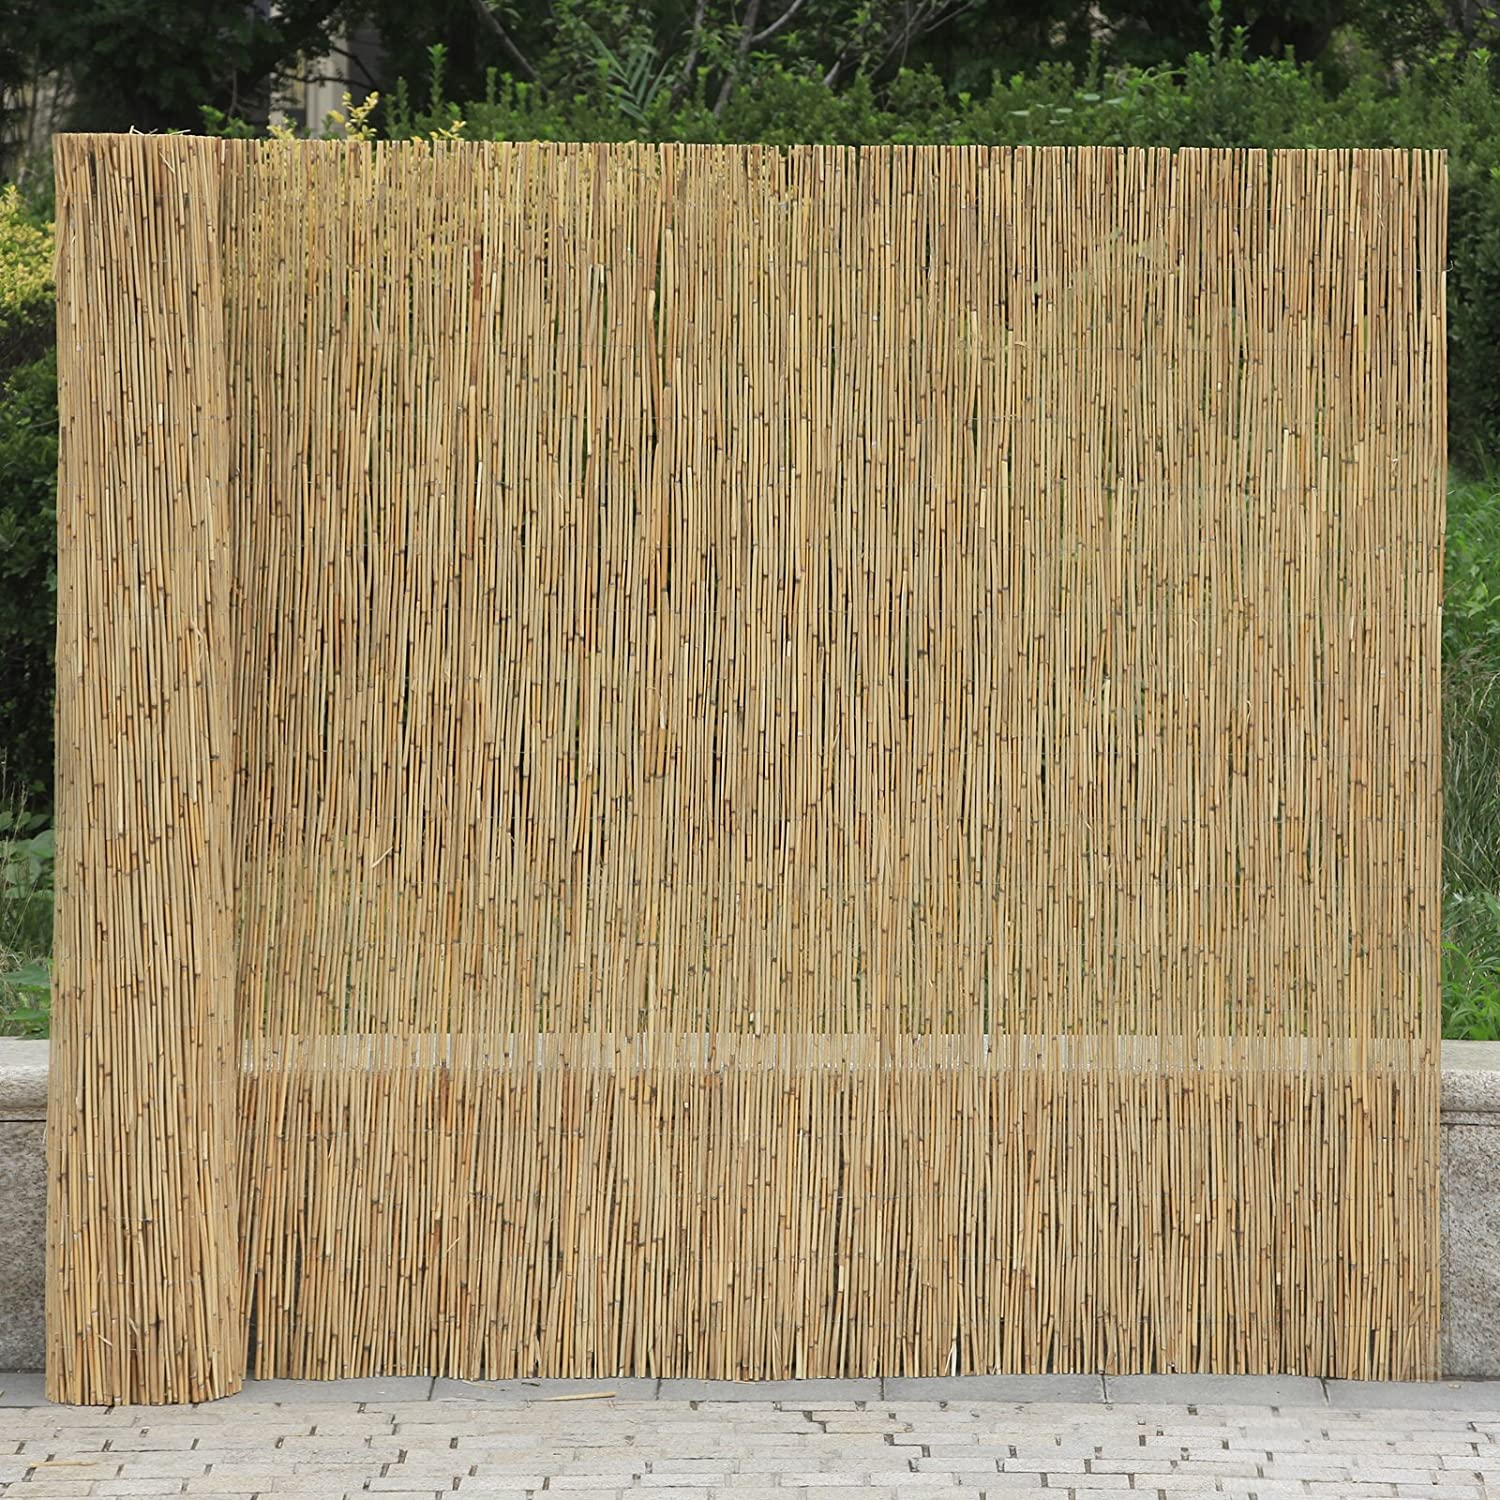 Amazon 6x16 reed reed fencing screening privacy fence amazon 6x16 reed reed fencing screening privacy fence panel garden balcony wind protection patio lawn garden baanklon Choice Image